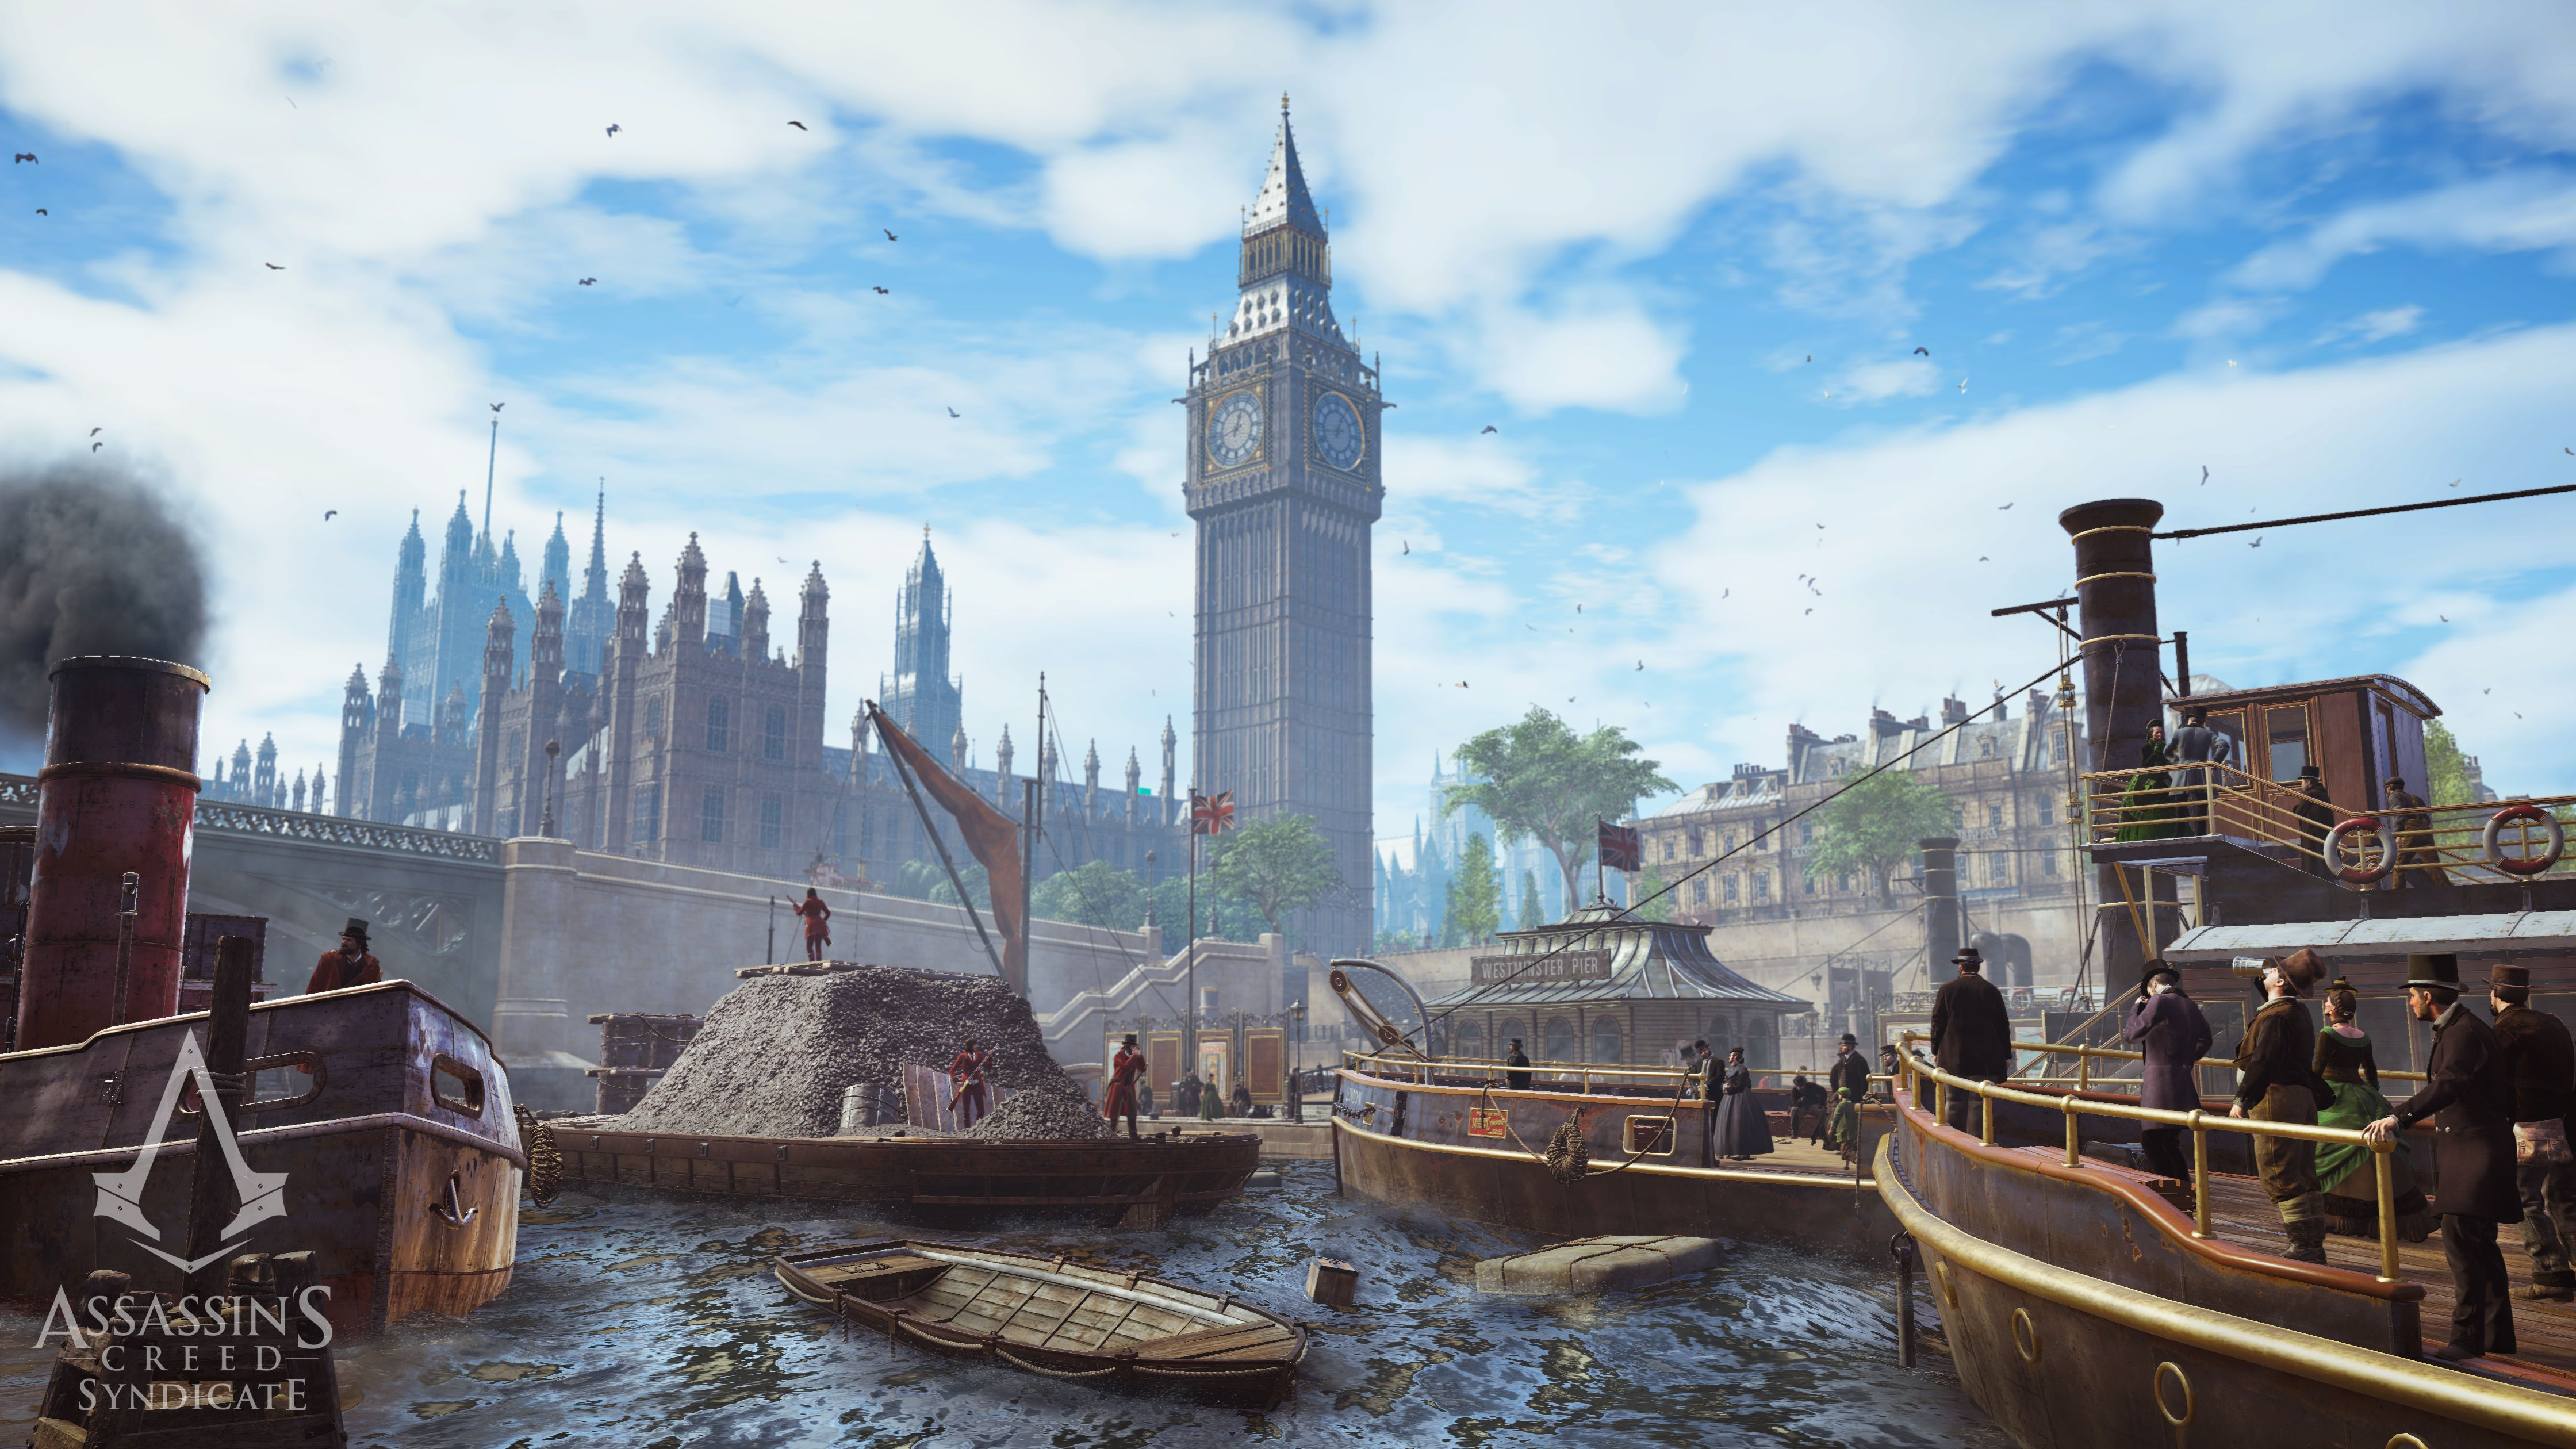 Assasin's Creed Syndicate Gameplay Screenshoot